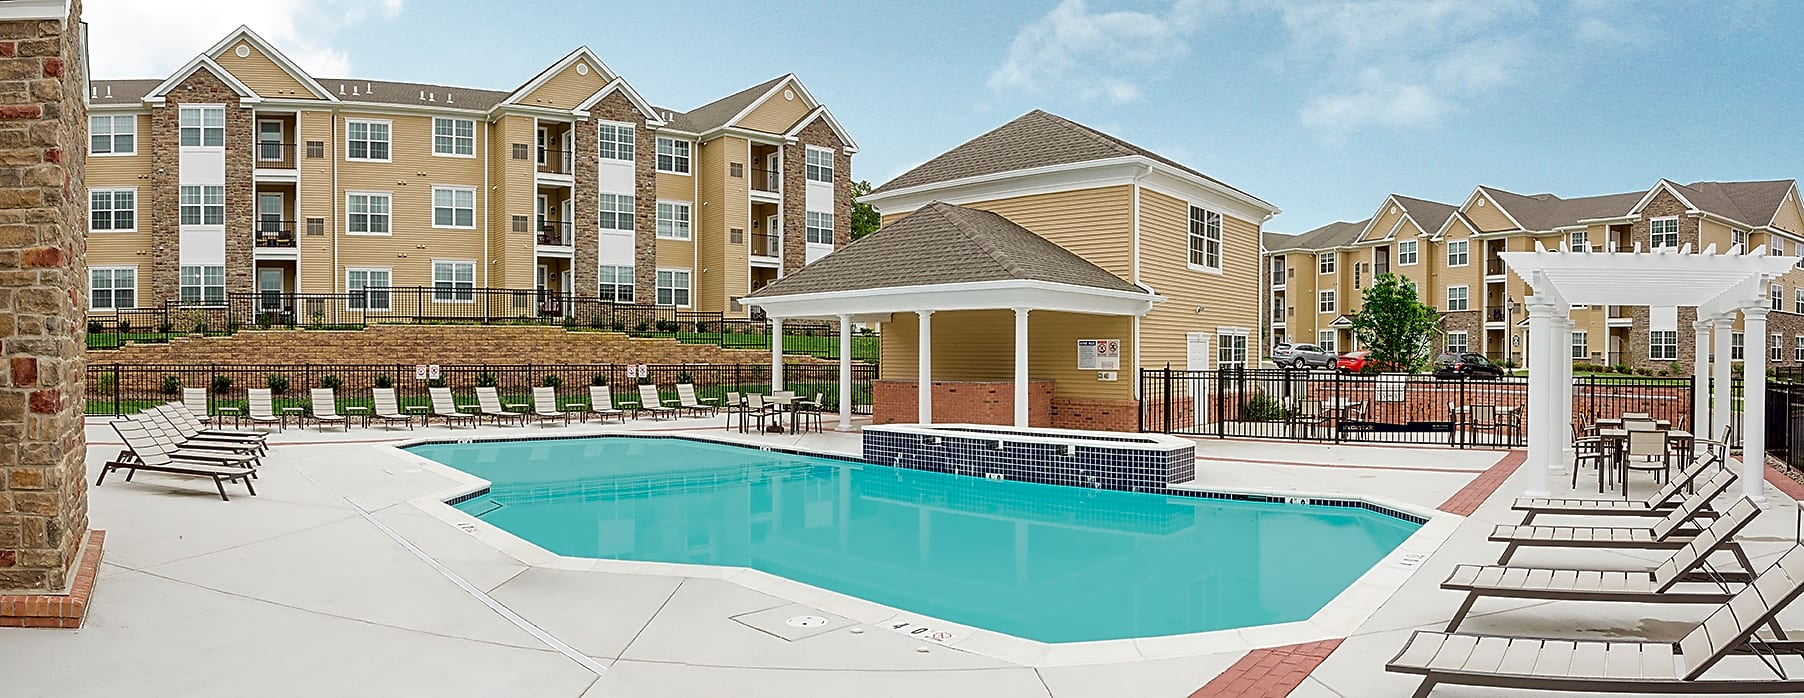 Apartments Near Lafayette Sycamore Landing for Lafayette College Students in Easton, PA